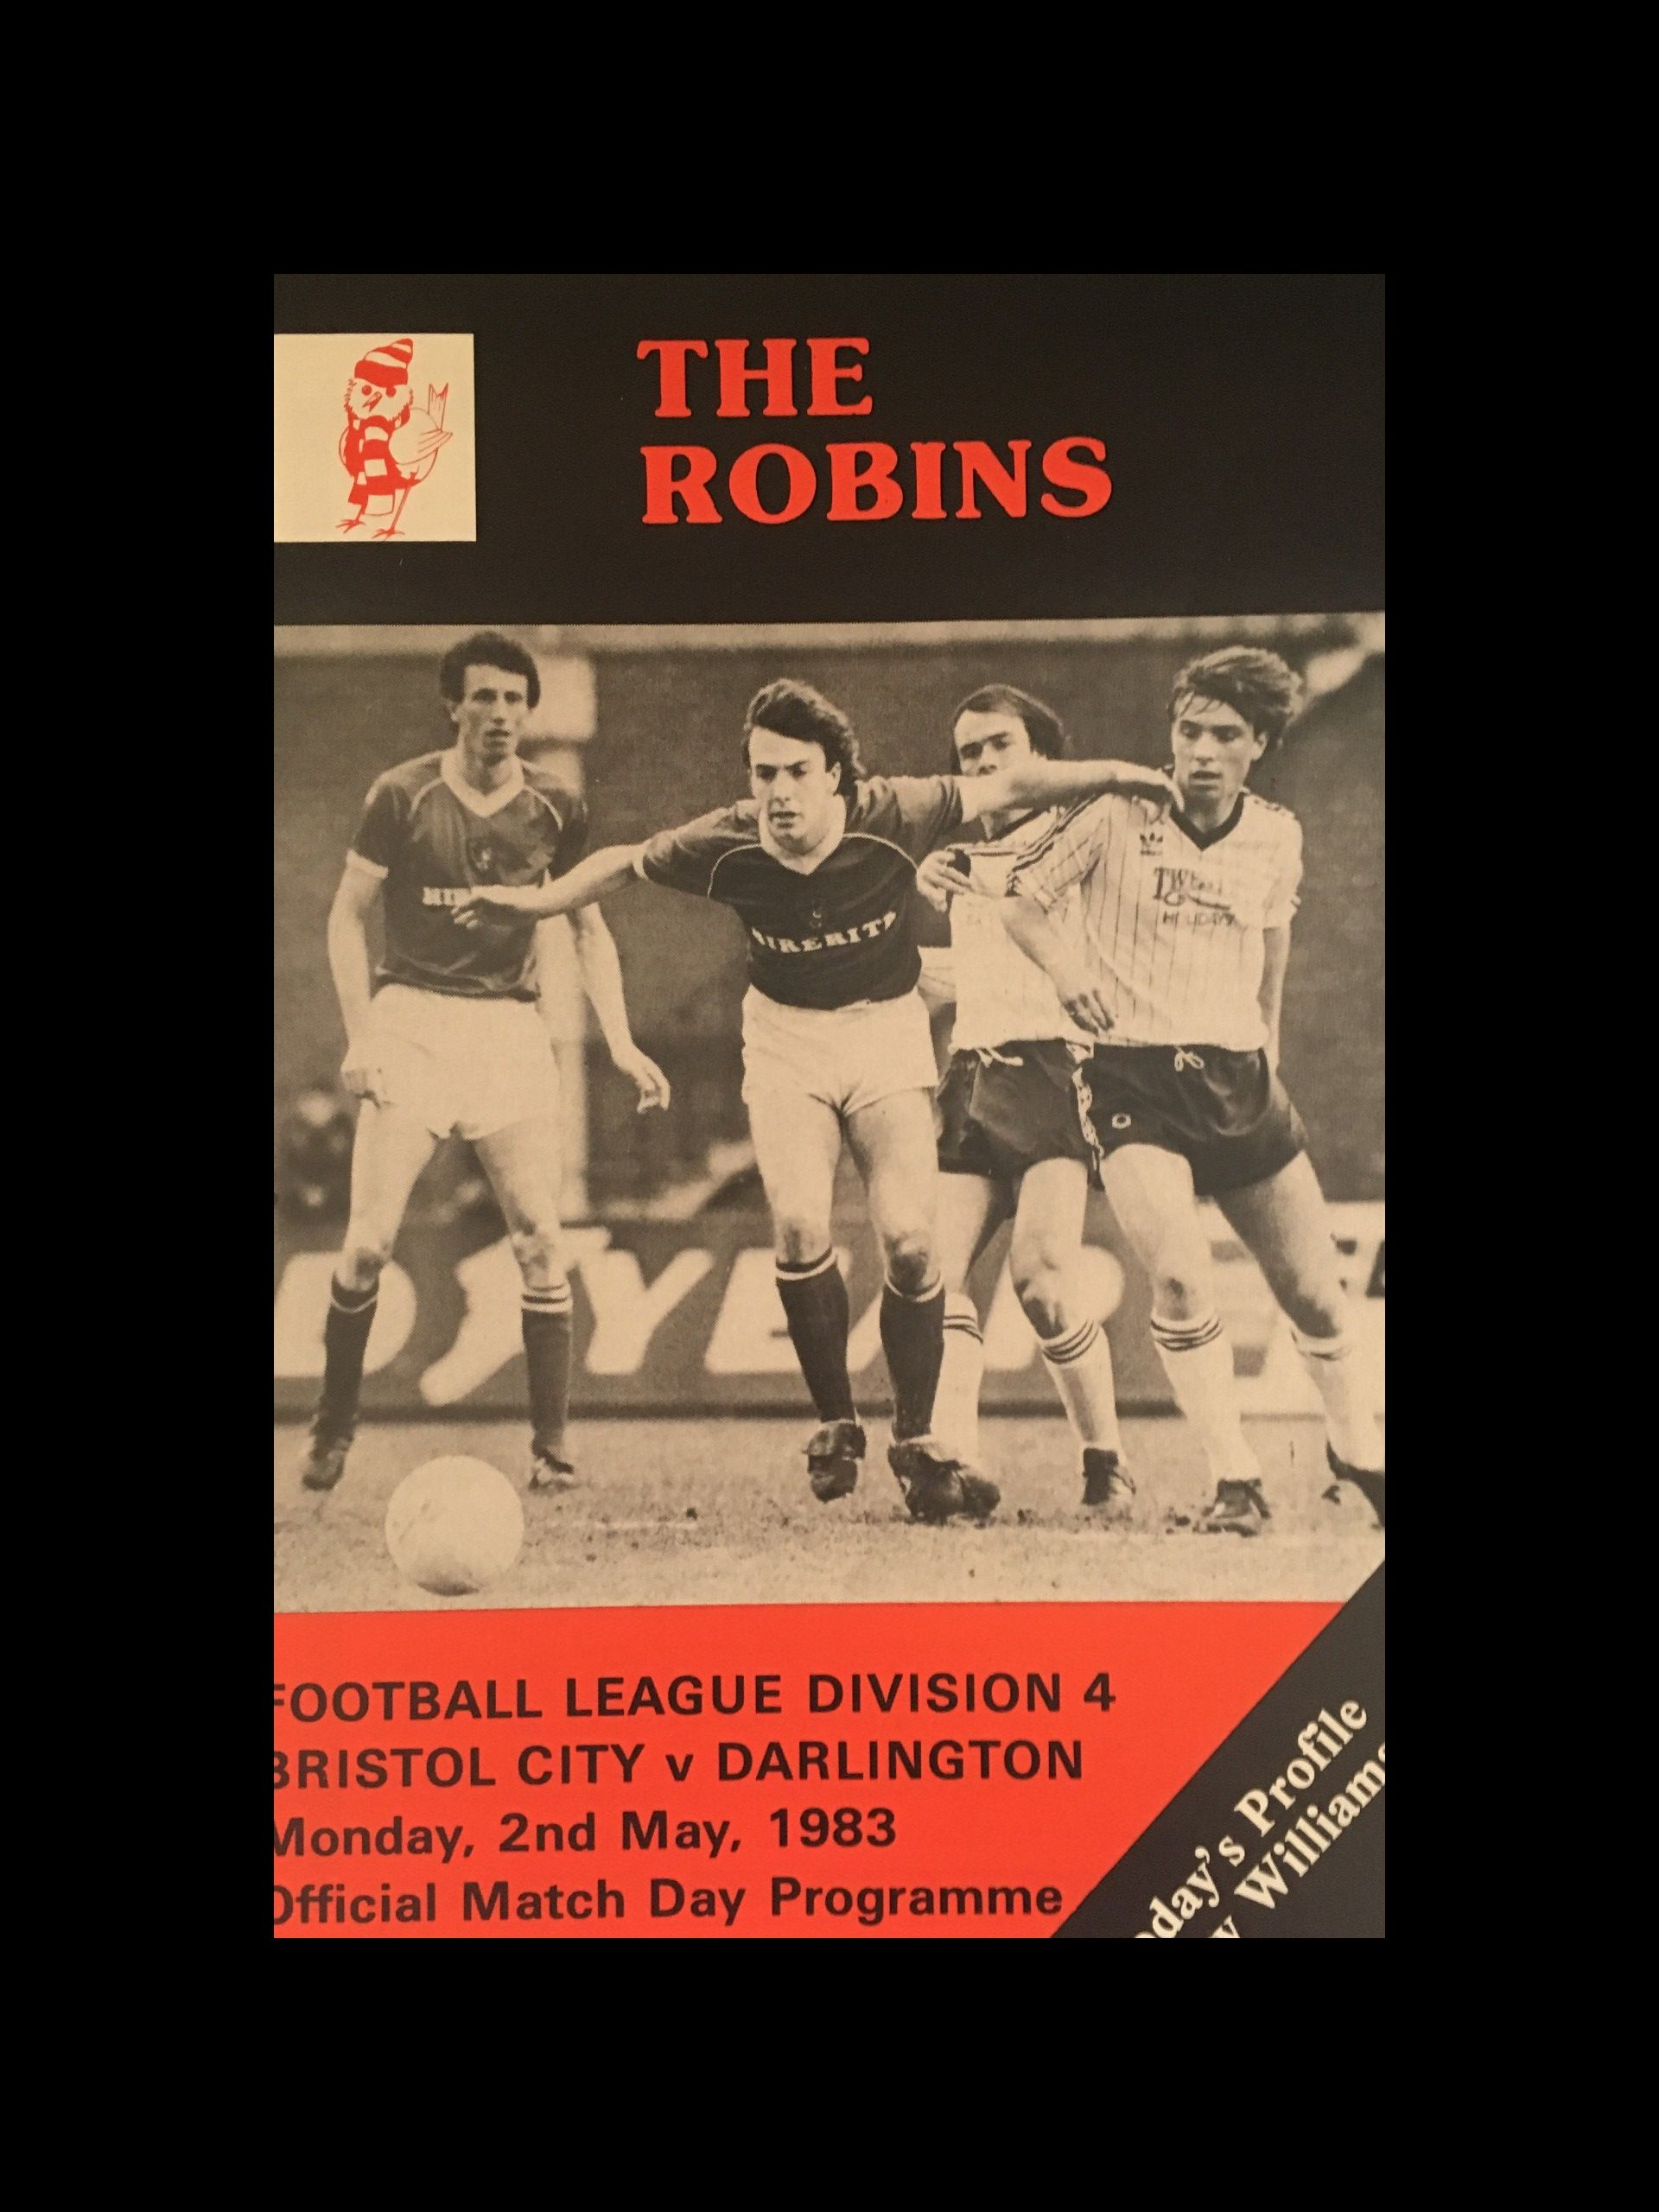 Bristol City v Darlington 02-05-83 Programme